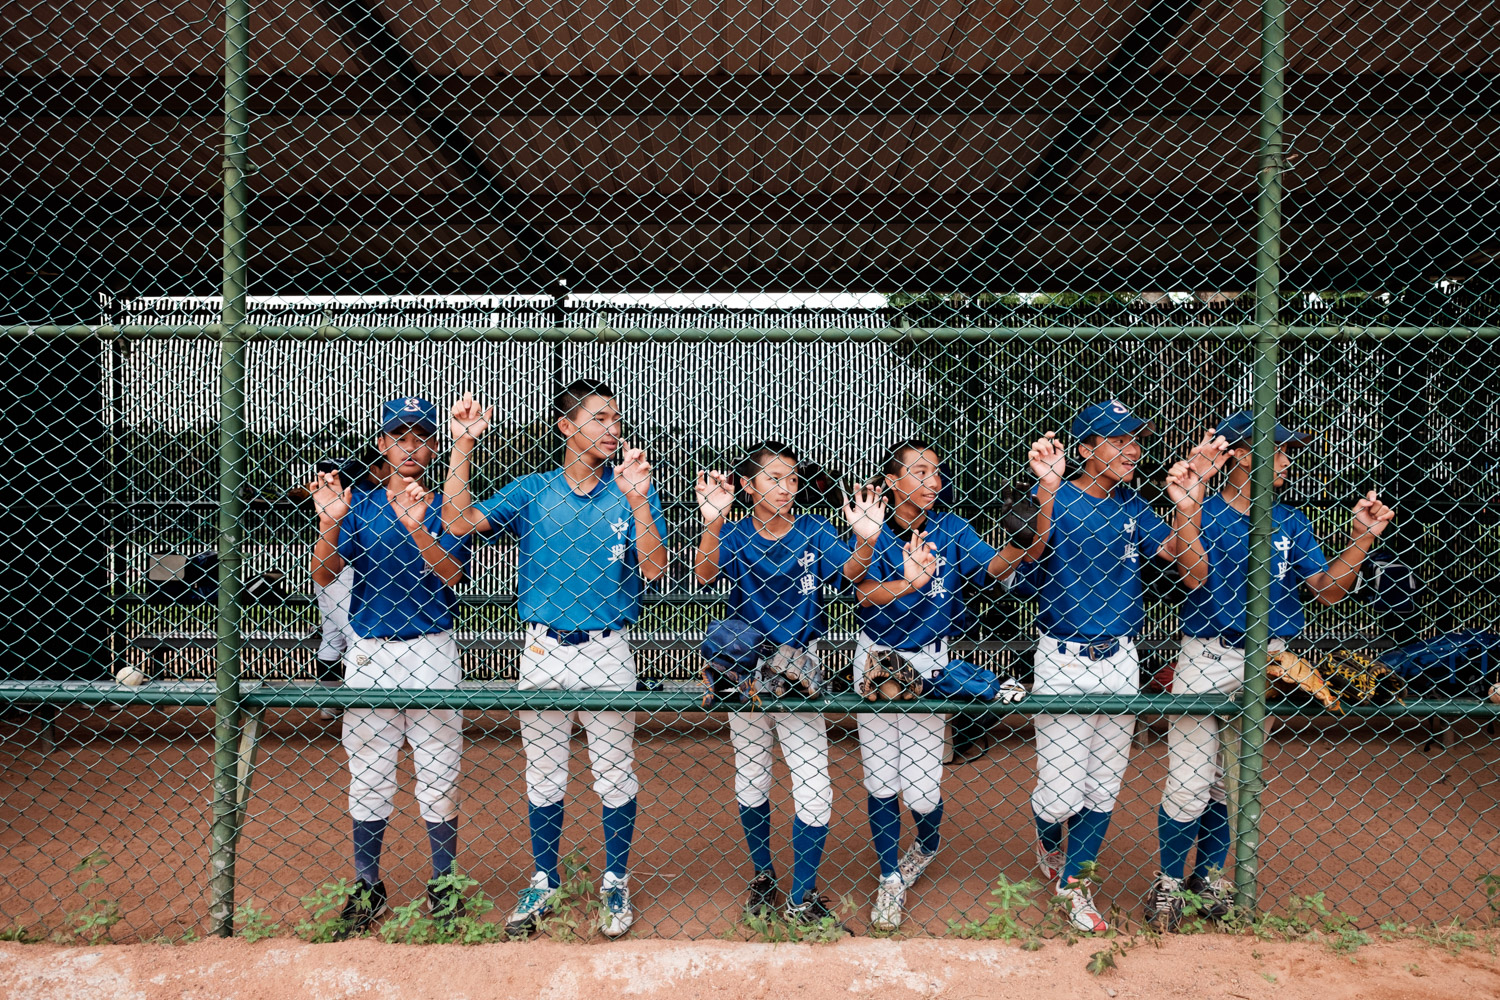 The New York Times October 2016 The Taiwan Baseball Scandal